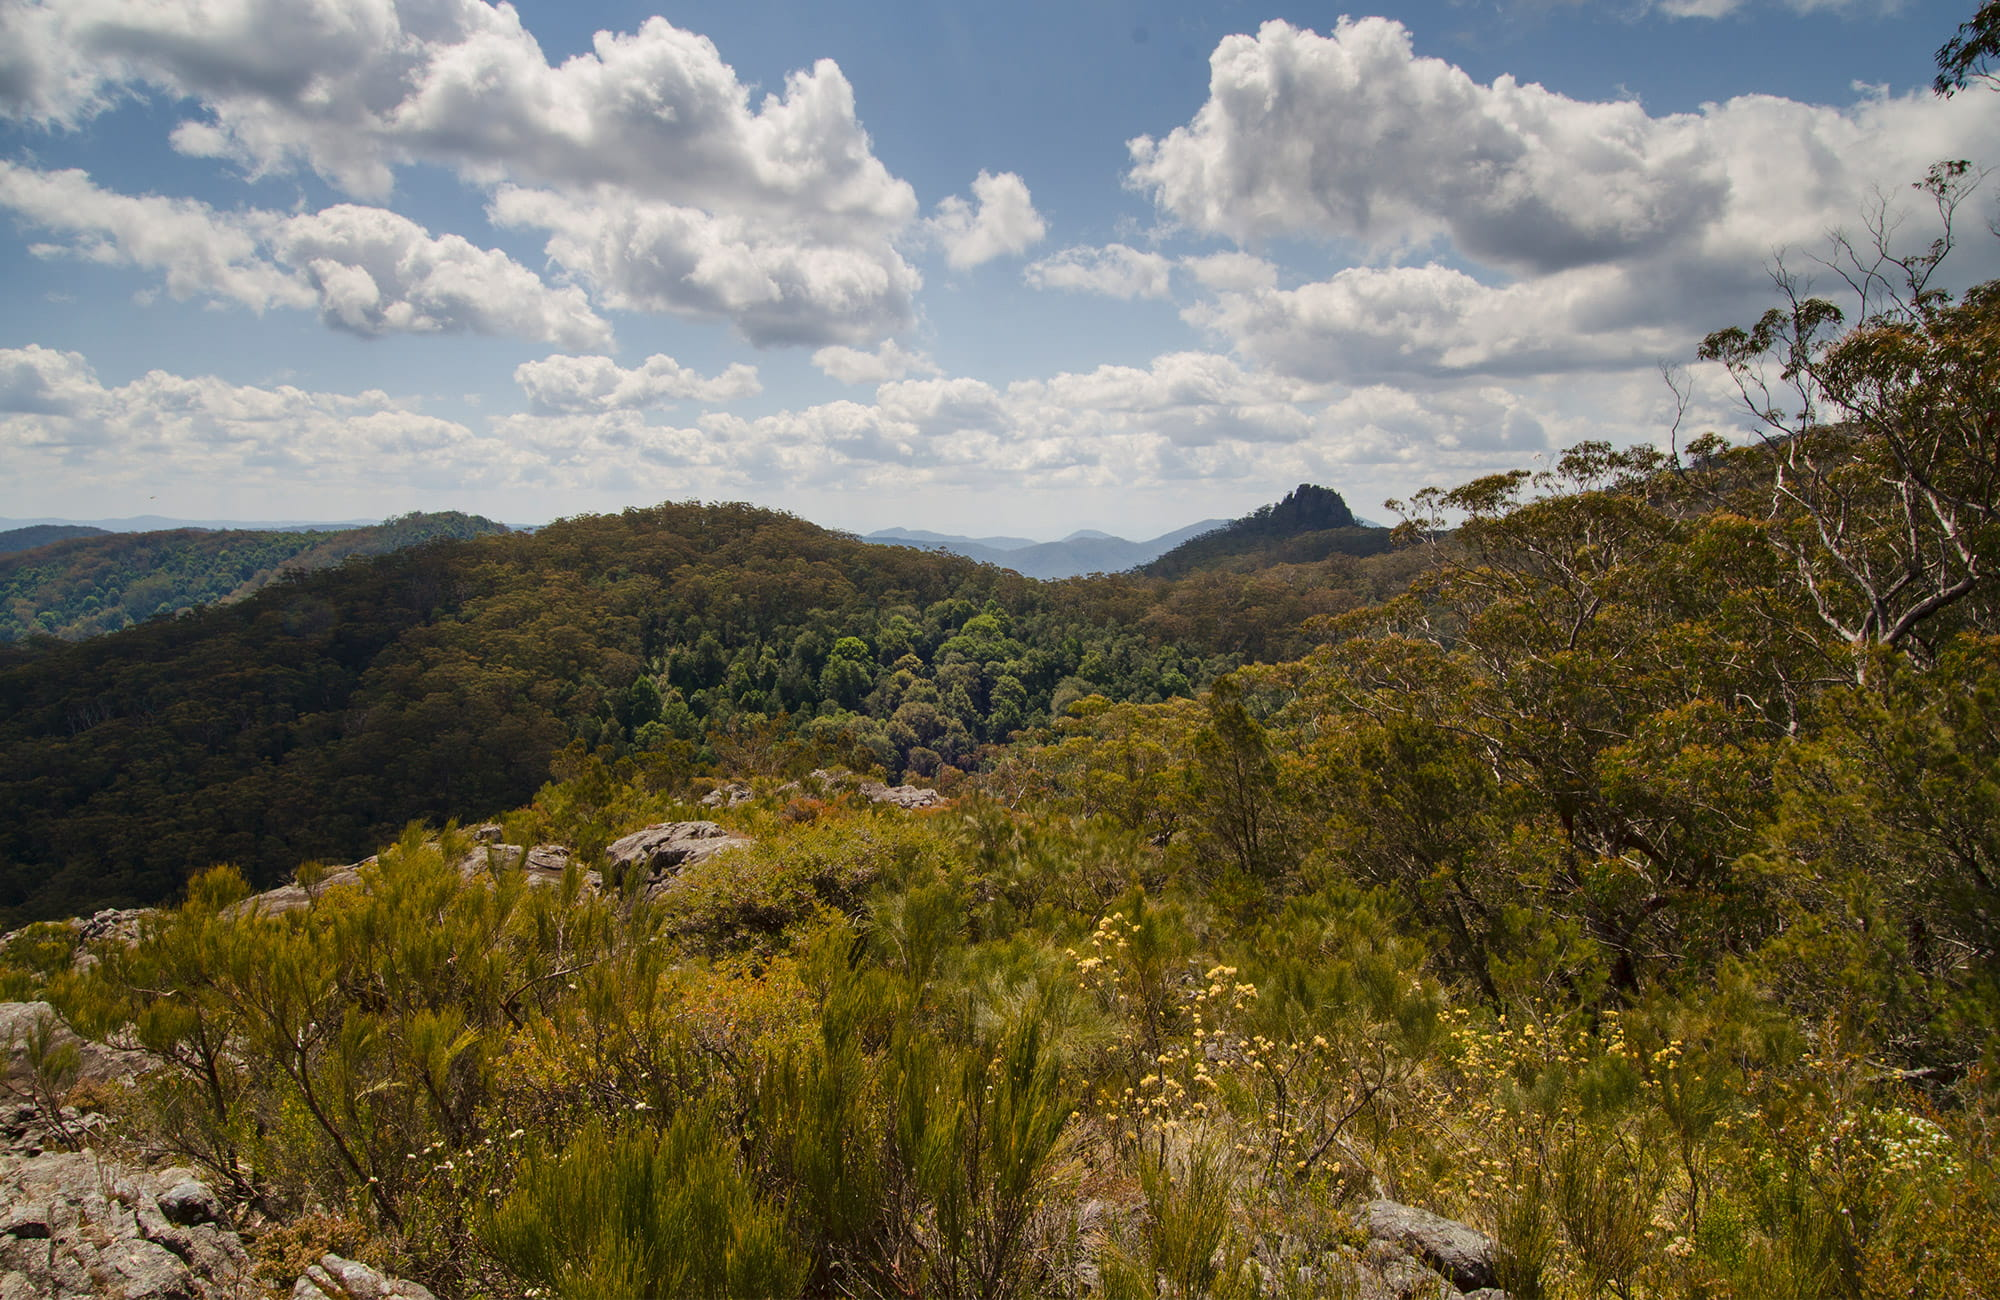 View of mountainous landscape including Kemps Pinnacle from Hoppy's lookout, in Oxley Wild Rivers National Park, with wildflowers in the foreground. Photo: John Spencer/OEH.